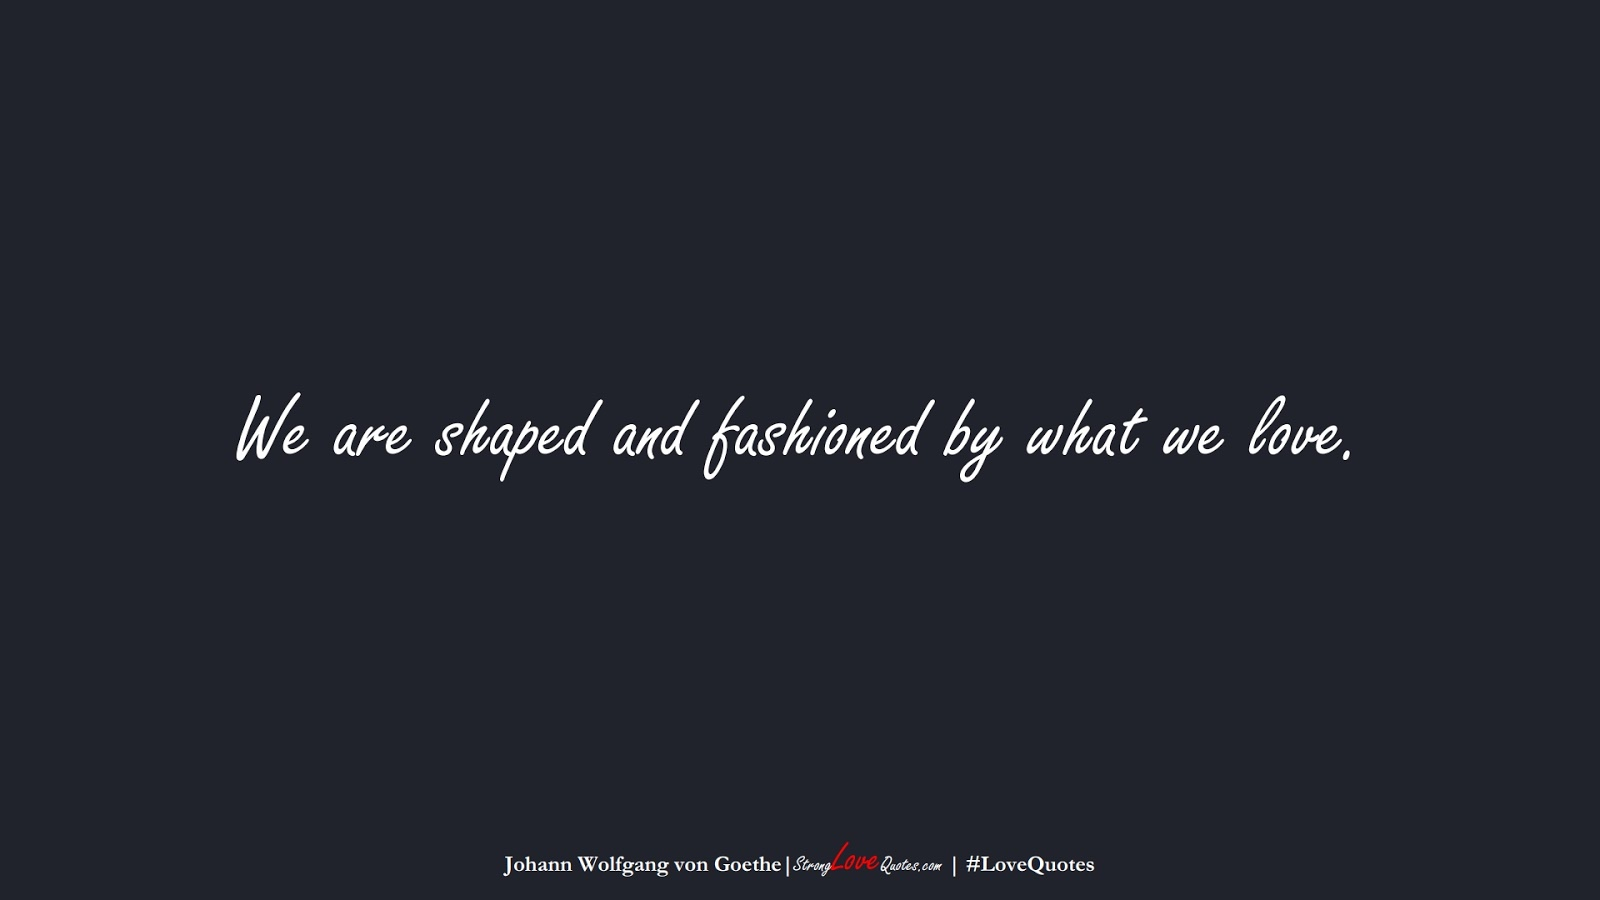 We are shaped and fashioned by what we love. (Johann Wolfgang von Goethe);  #LoveQuotes